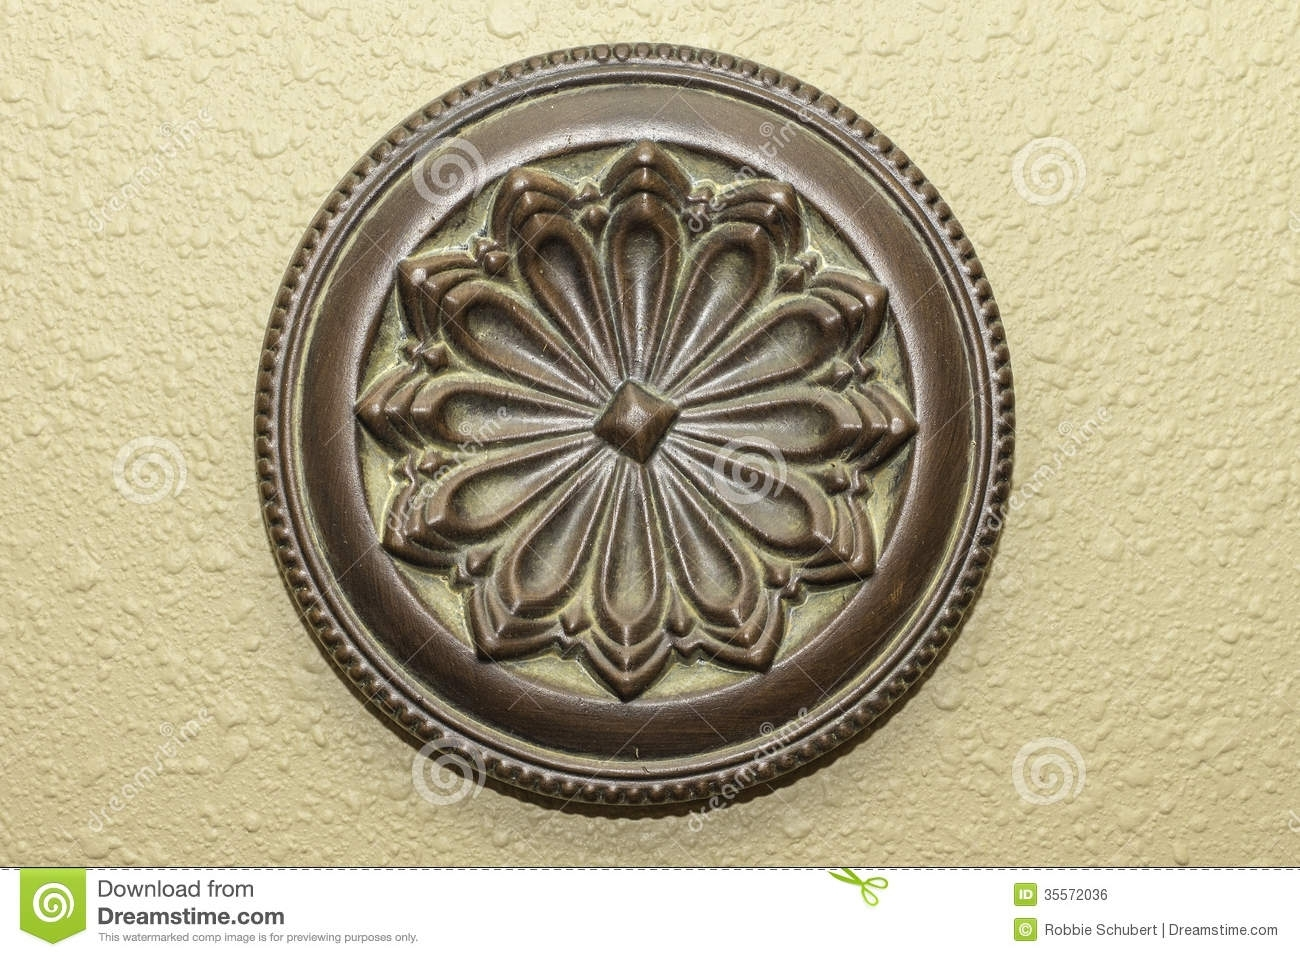 Decorative Round Wall Art Stock Photo (View 15 of 20)